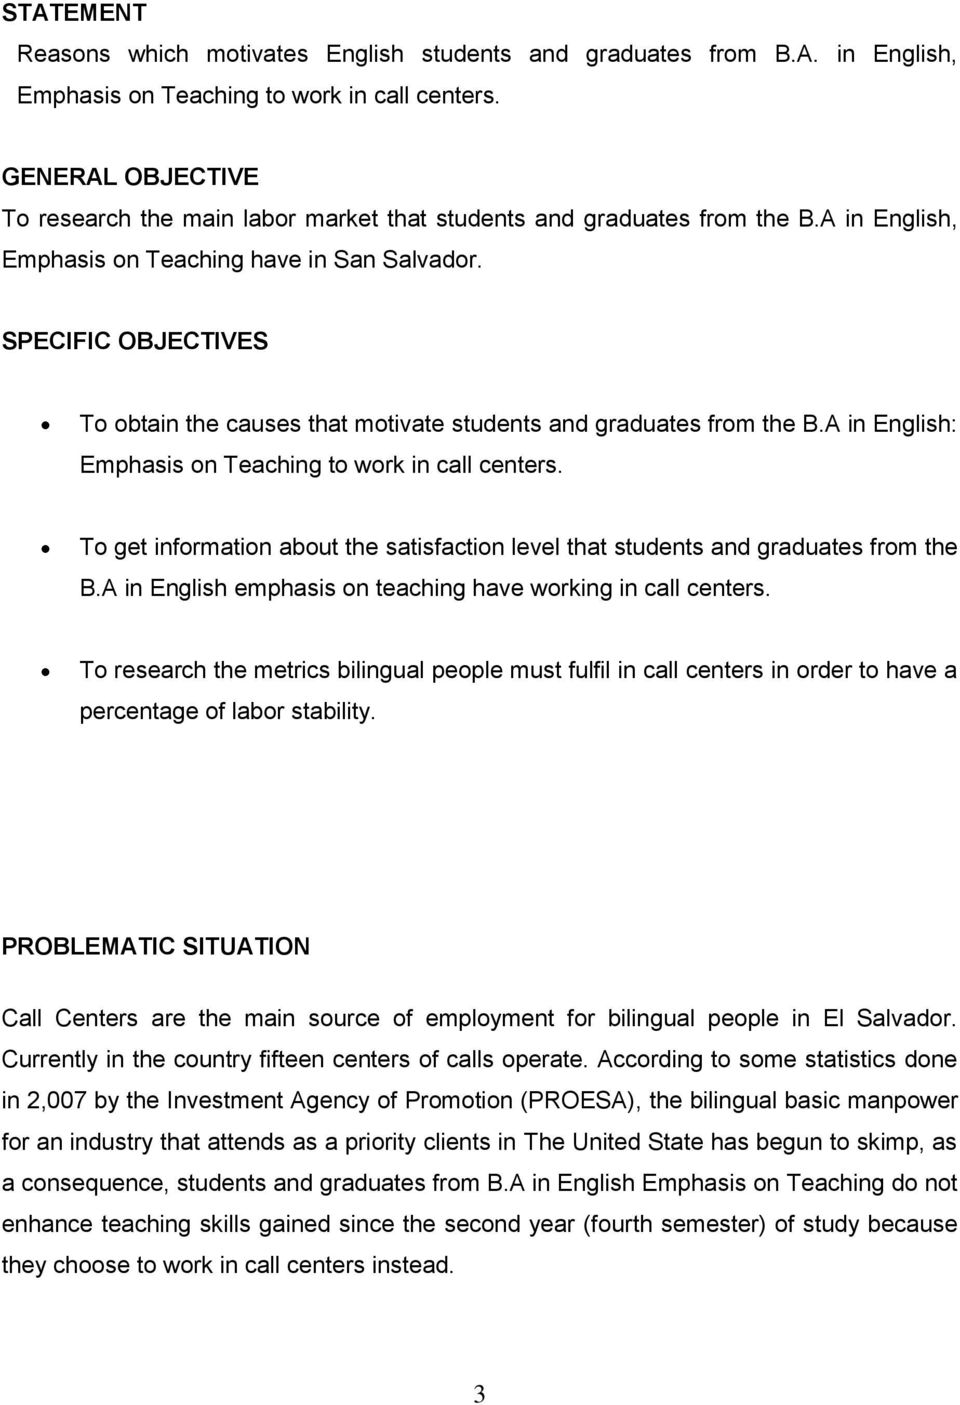 SPECIFIC OBJECTIVES To obtain the causes that motivate students and graduates from the B.A in English: Emphasis on Teaching to work in call centers.